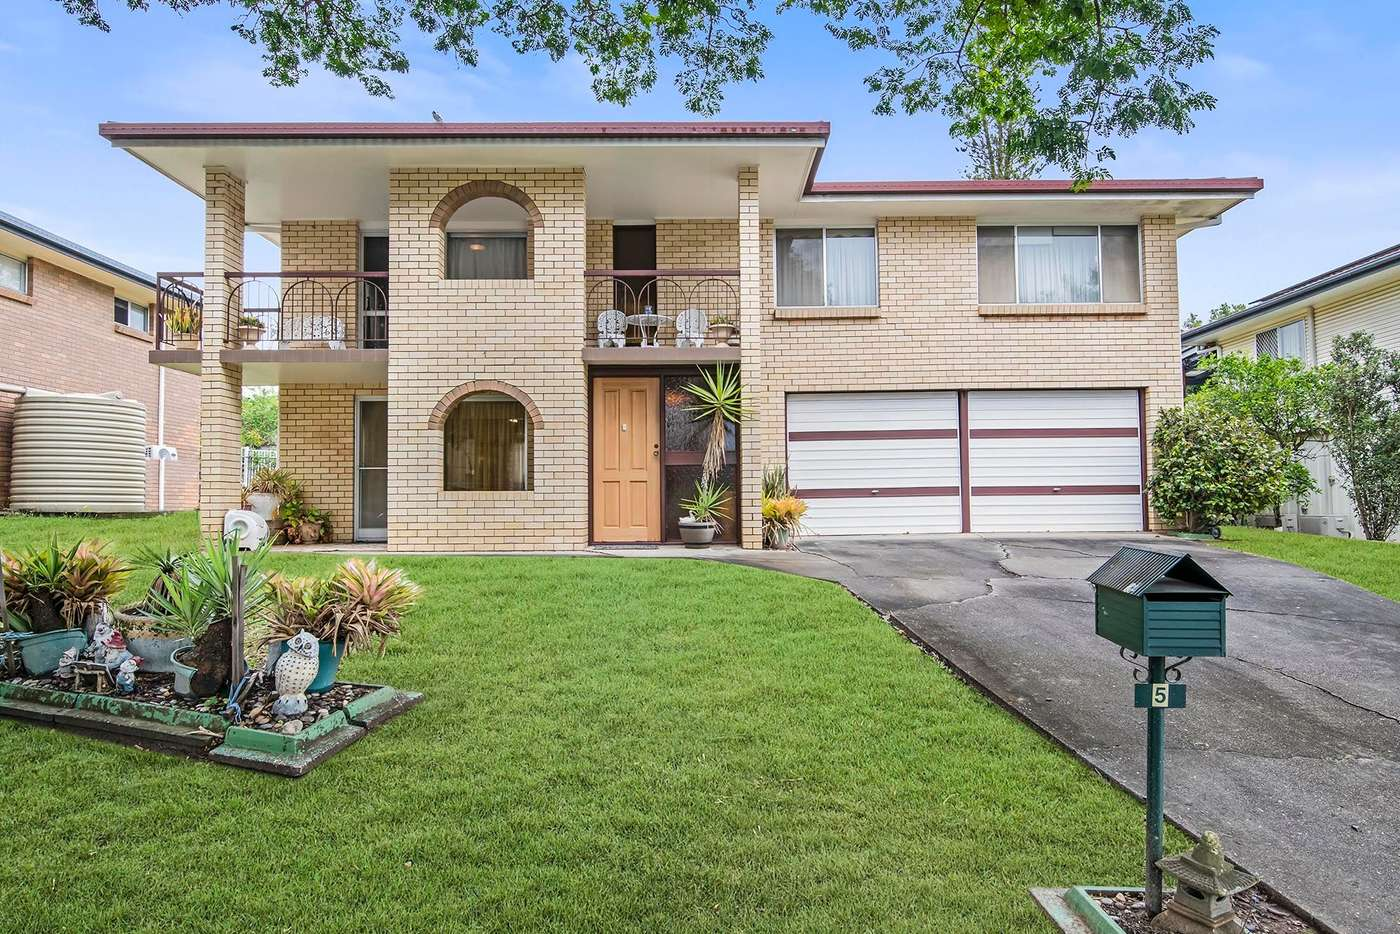 Main view of Homely house listing, 5 Melon Street, Mansfield QLD 4122